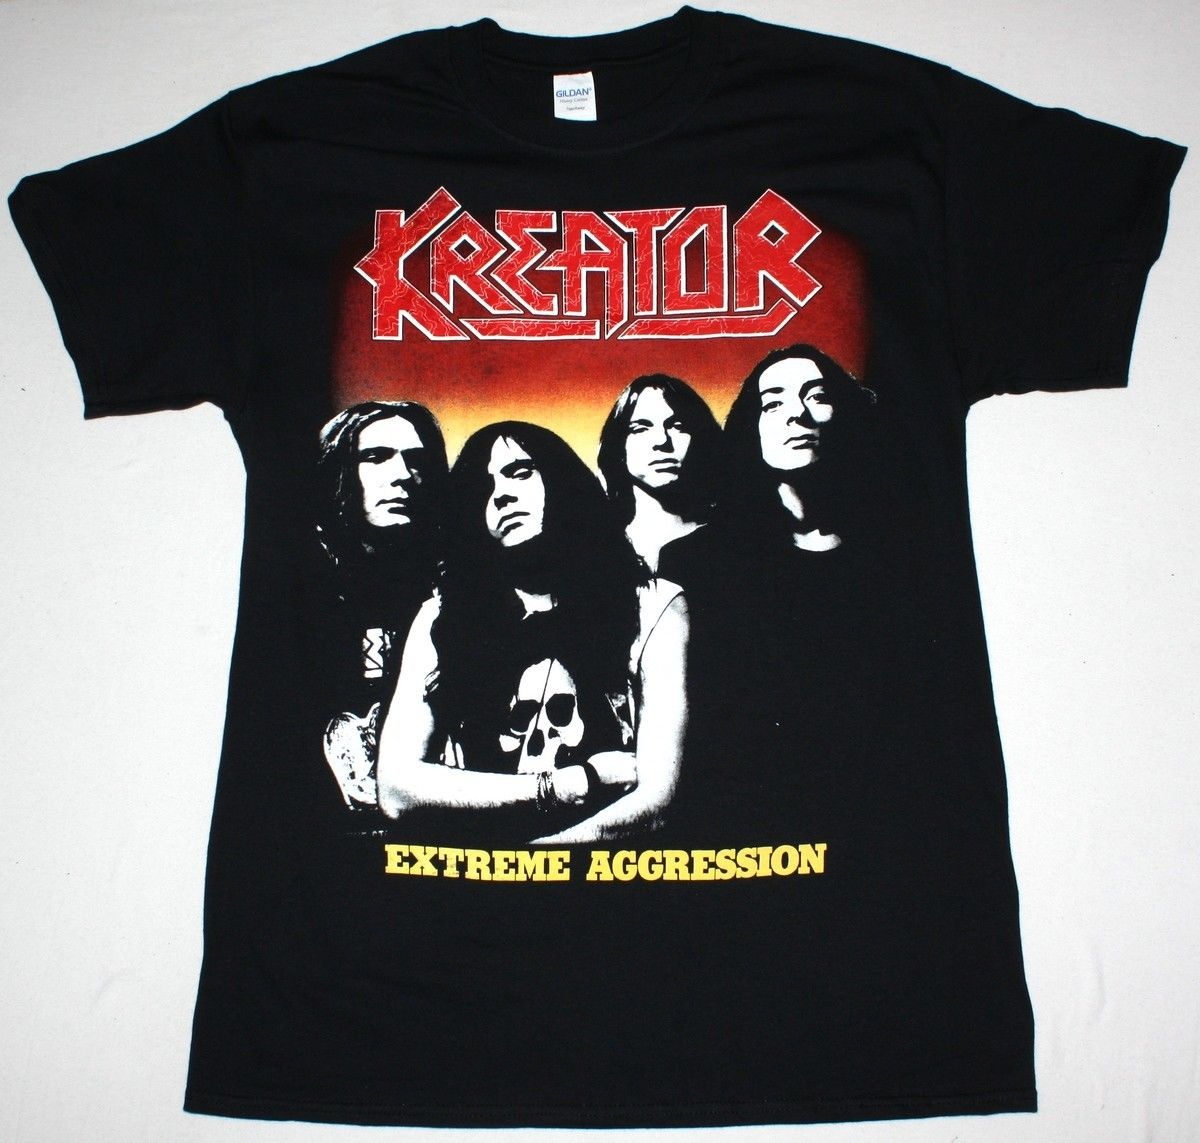 KREATOR EXTREME AGGRESSION THRASH METAL DESTRUCTION TANKARD NEW BLACK T-SHIRT